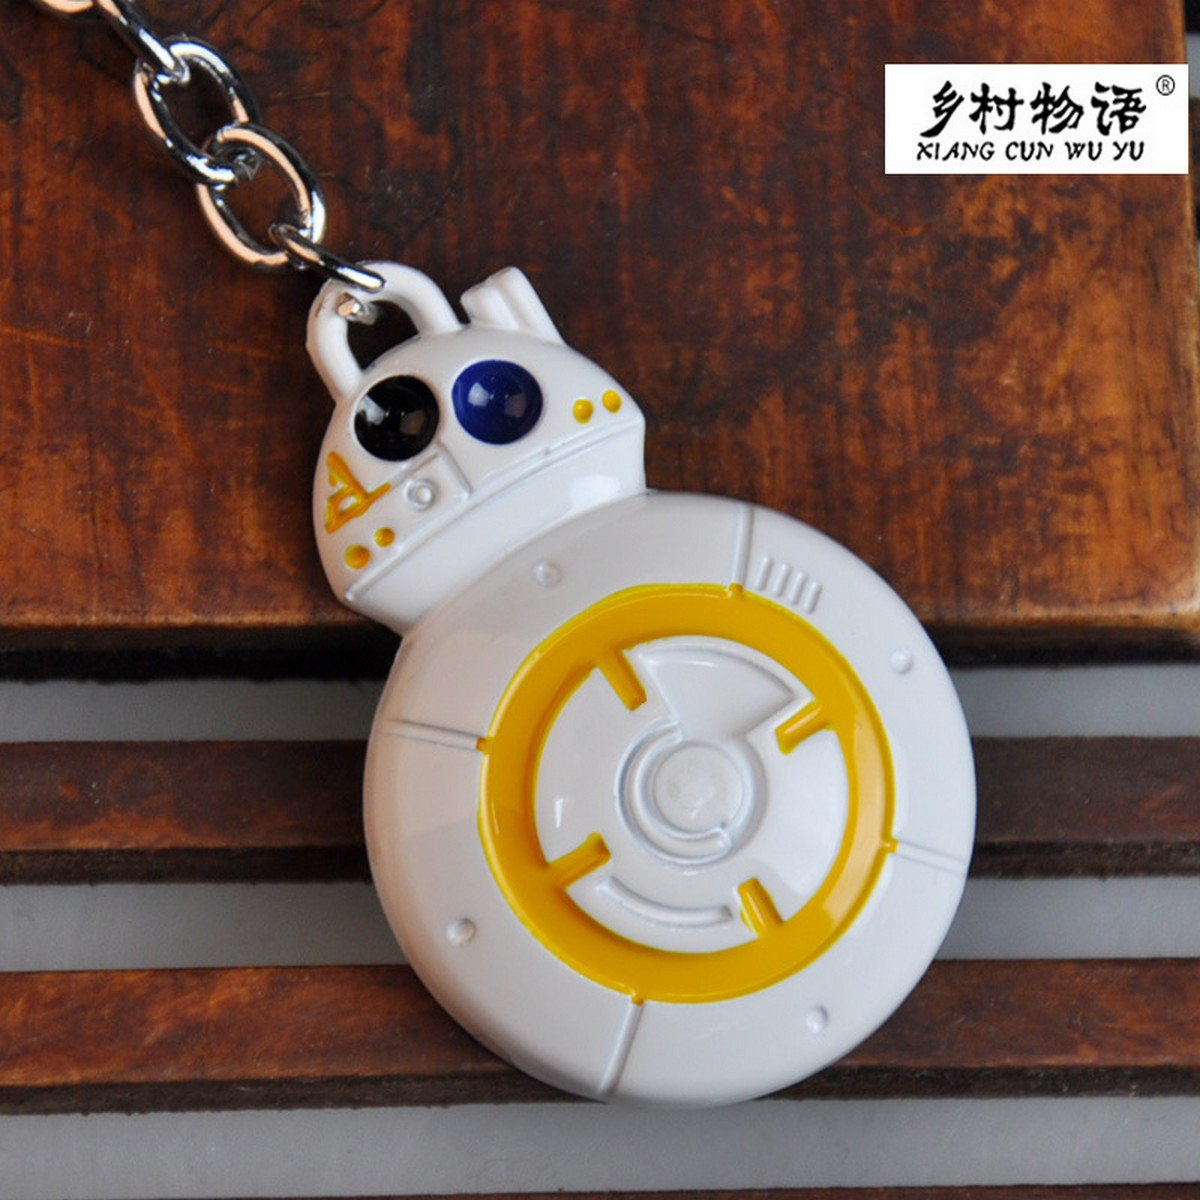 Buy The Star Wars Force Awakens BB8 BB 8 Droid Robot Hang  Pendant Action Figure Toys Keychain Gife